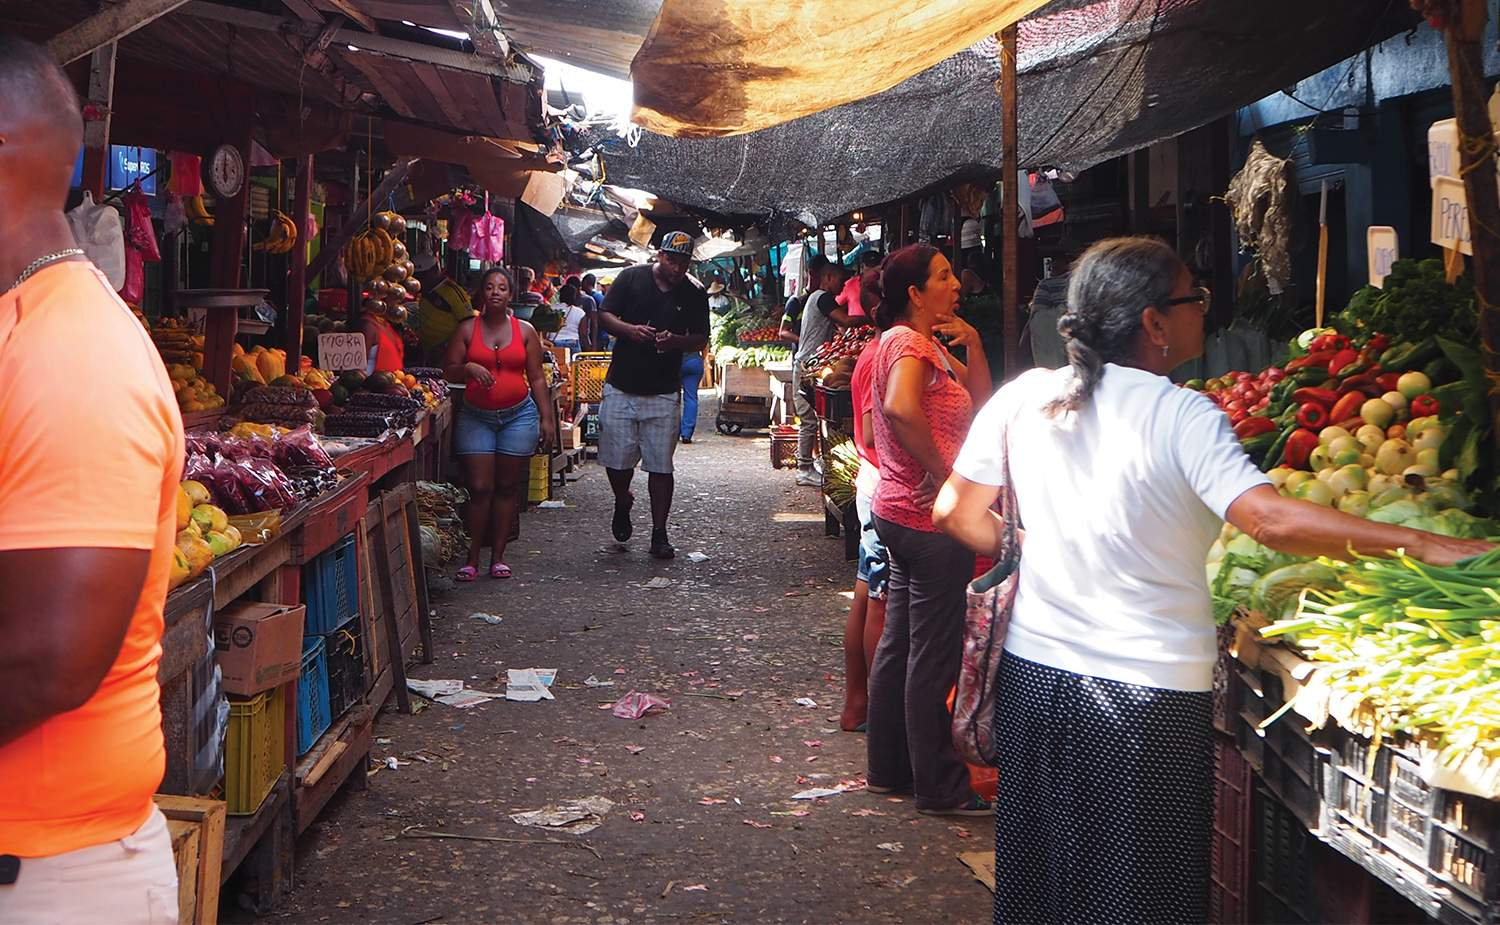 Bazurto market in Cartagena